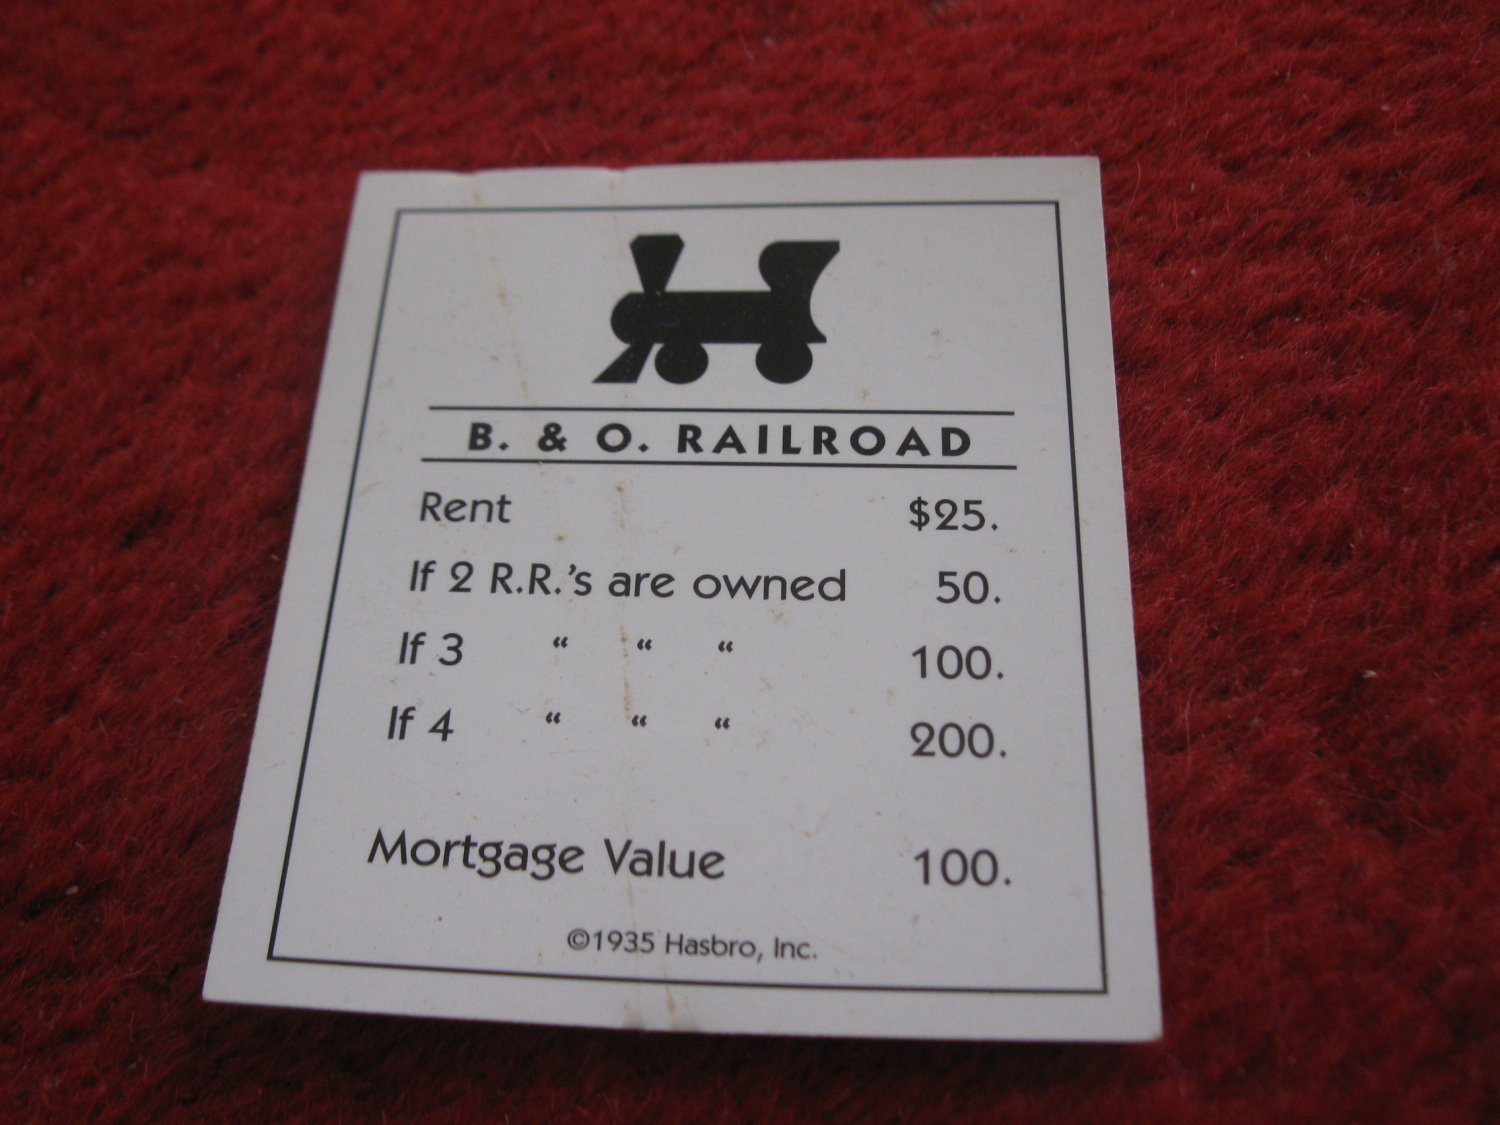 2004 Monopoly Board Game Piece: B. & O. Railroad Title Deed